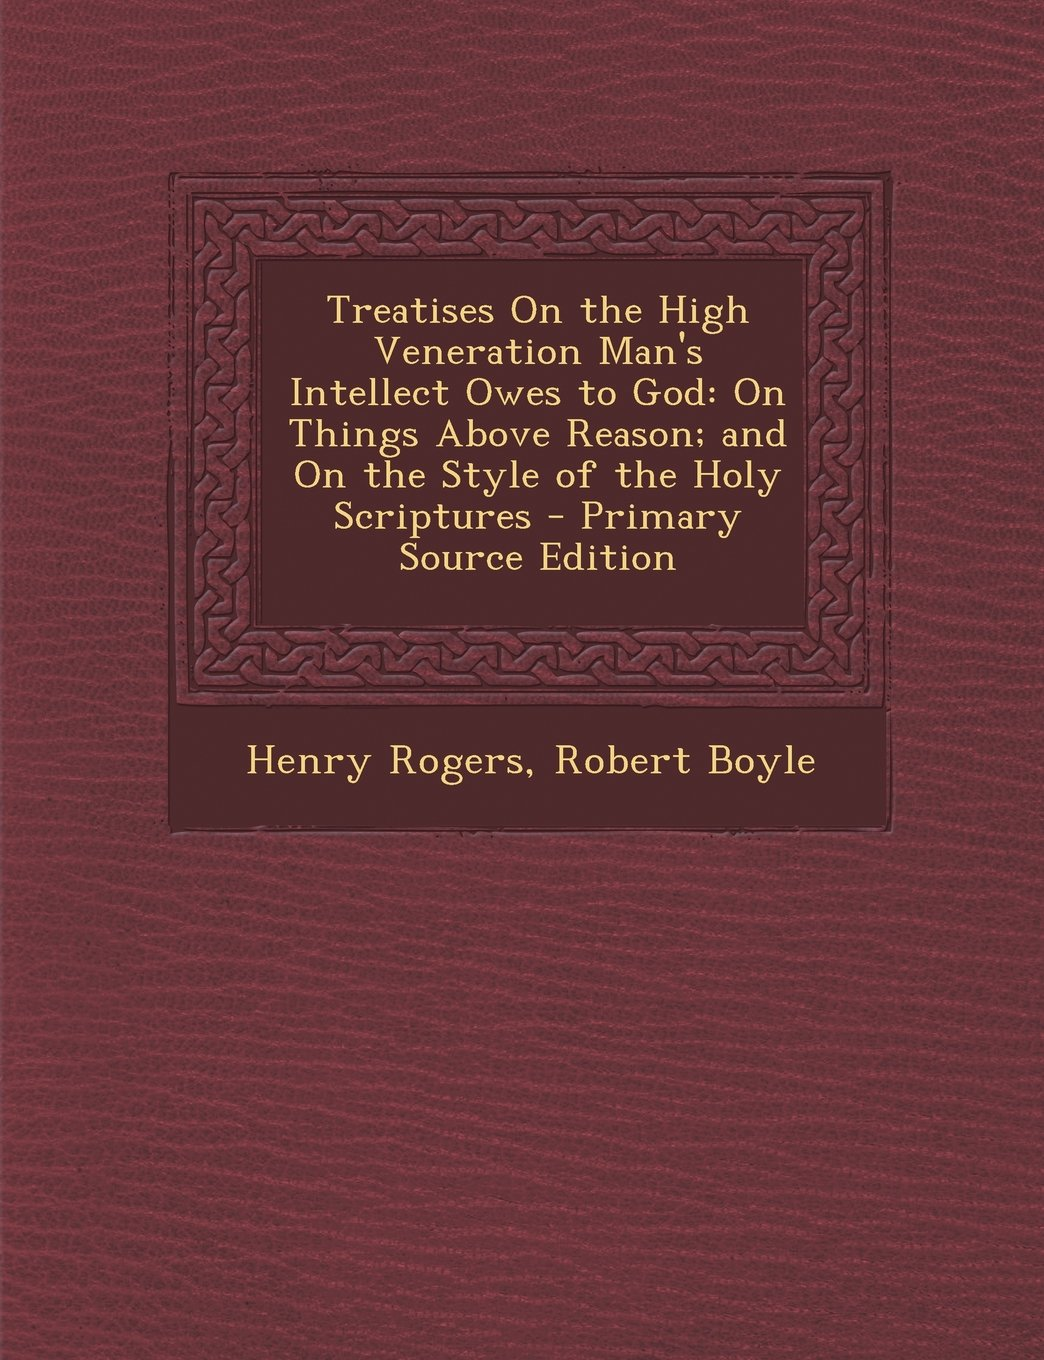 Treatises On the High Veneration Man's Intellect Owes to God: On Things Above Reason; and On the Style of the Holy Scriptures pdf epub